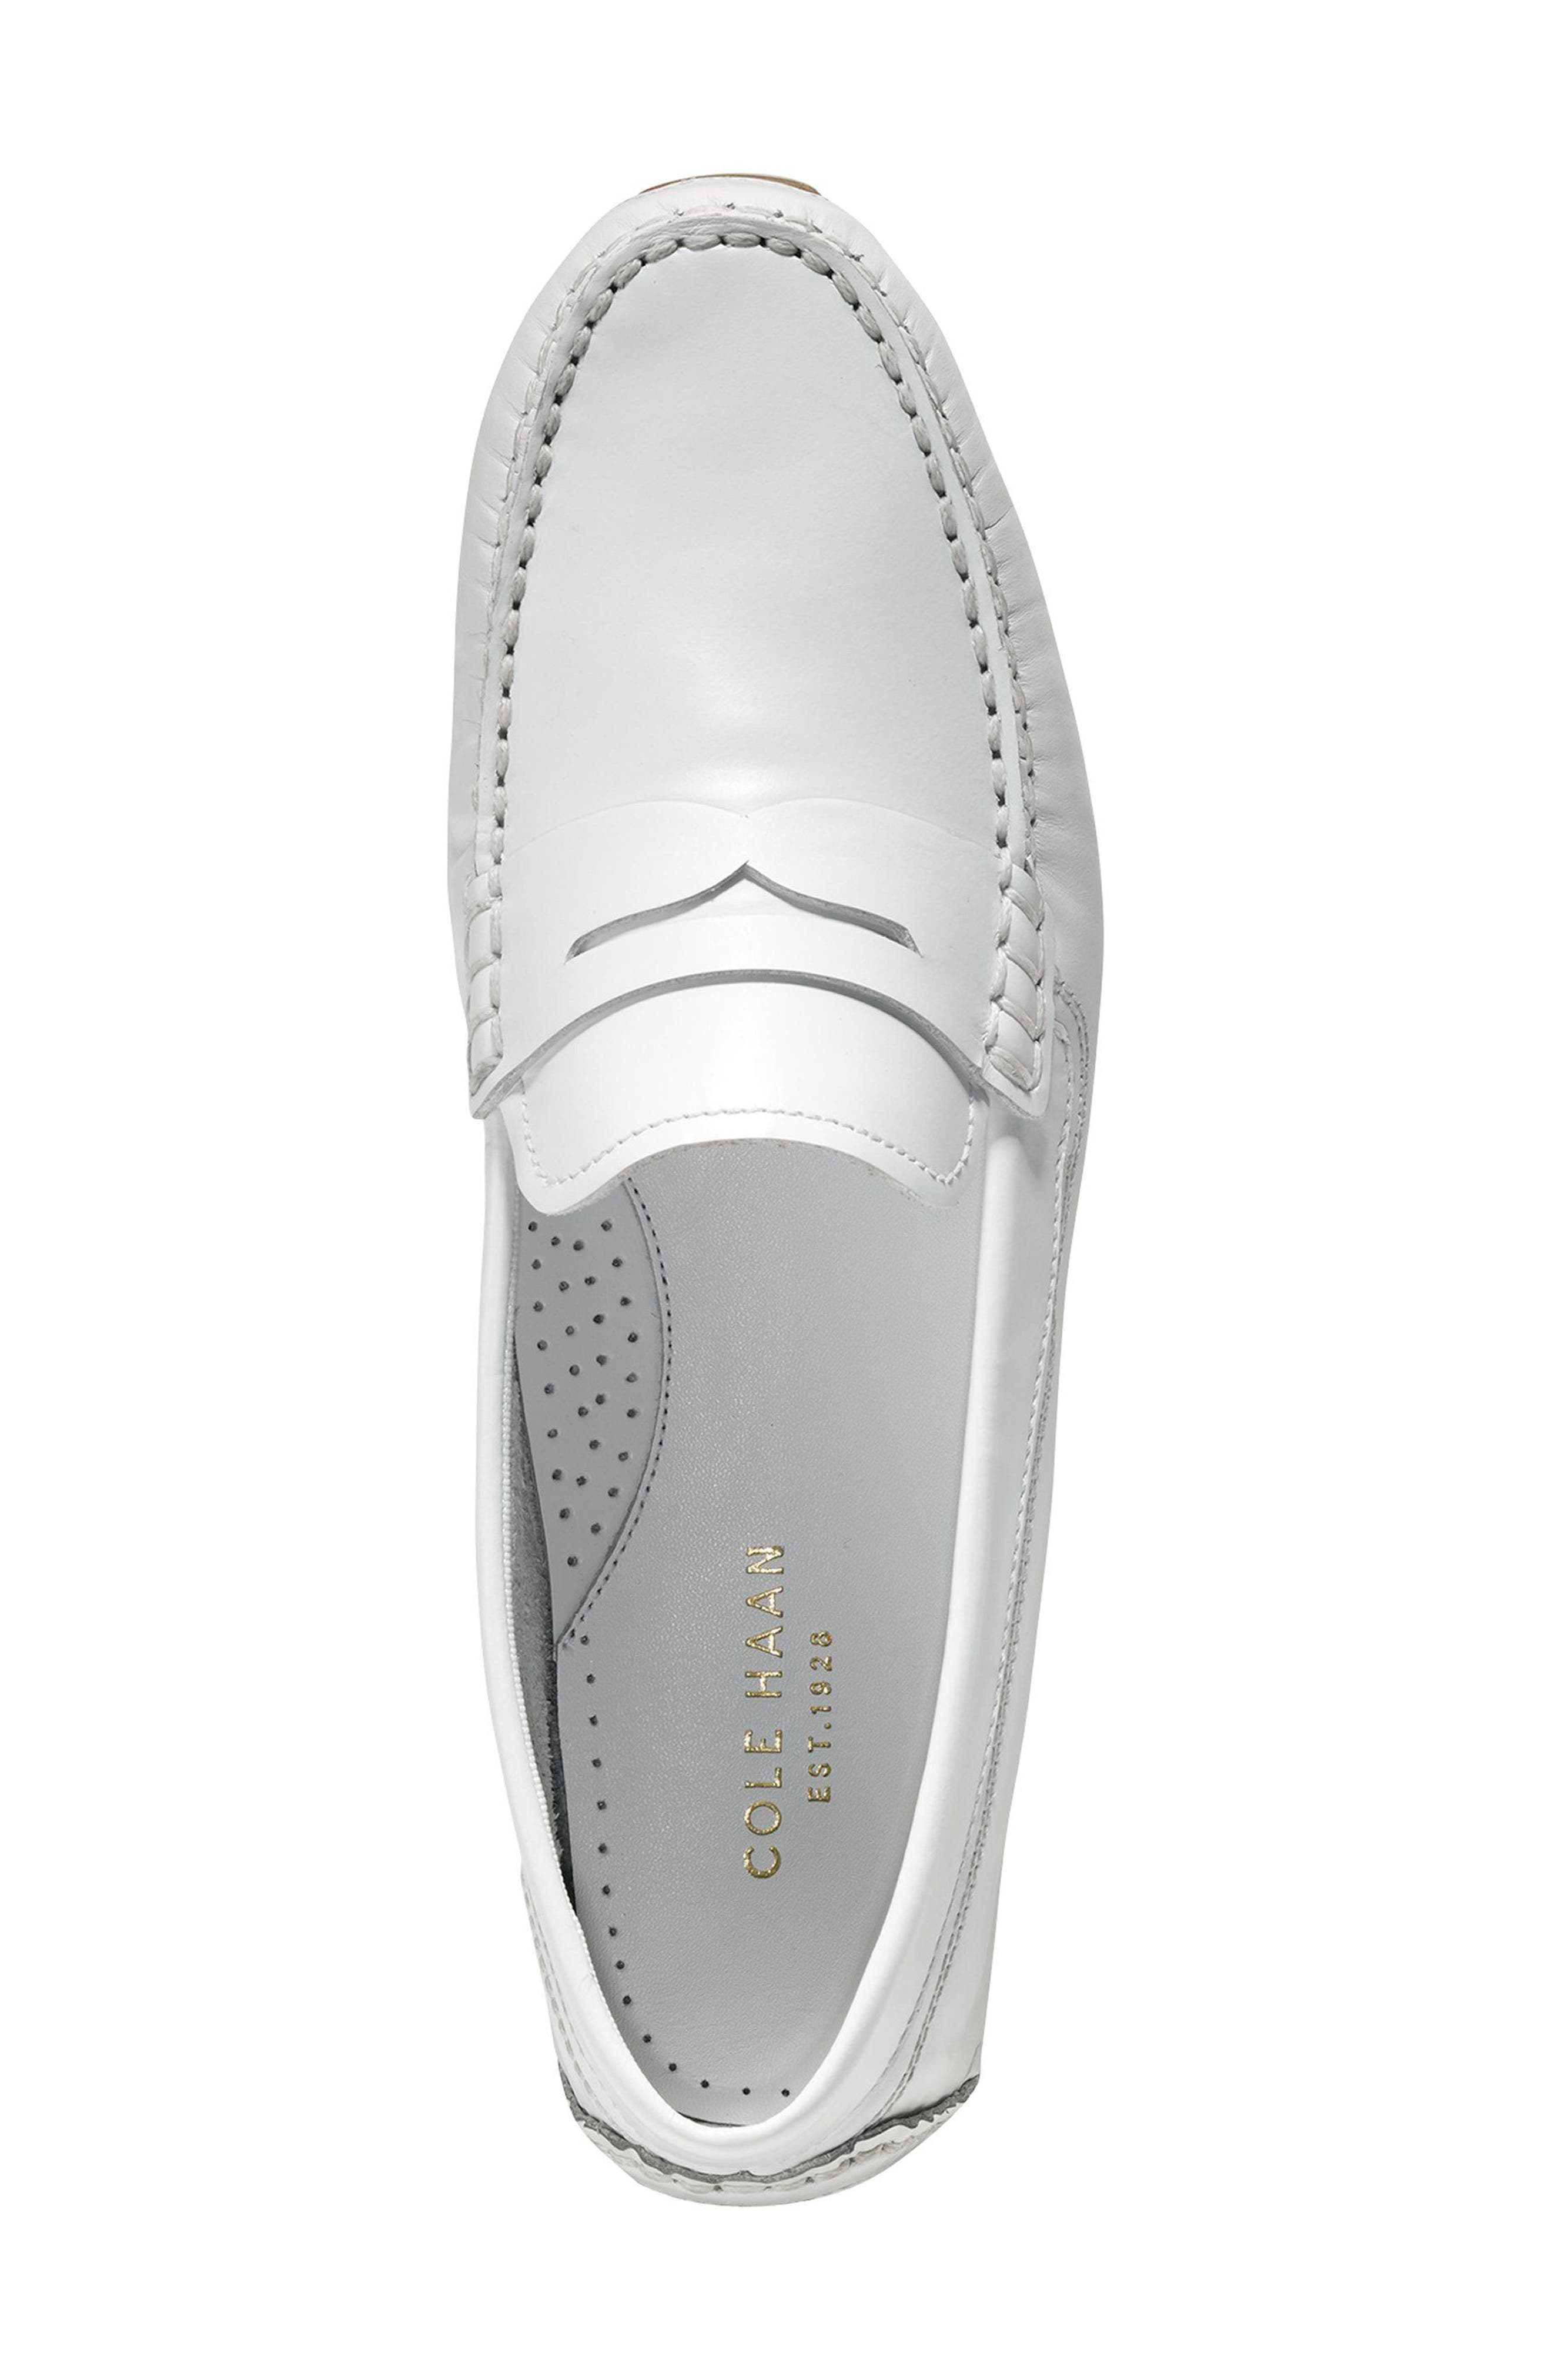 Rodeo Penny Driving Loafer,                             Alternate thumbnail 3, color,                             Optic White Leather